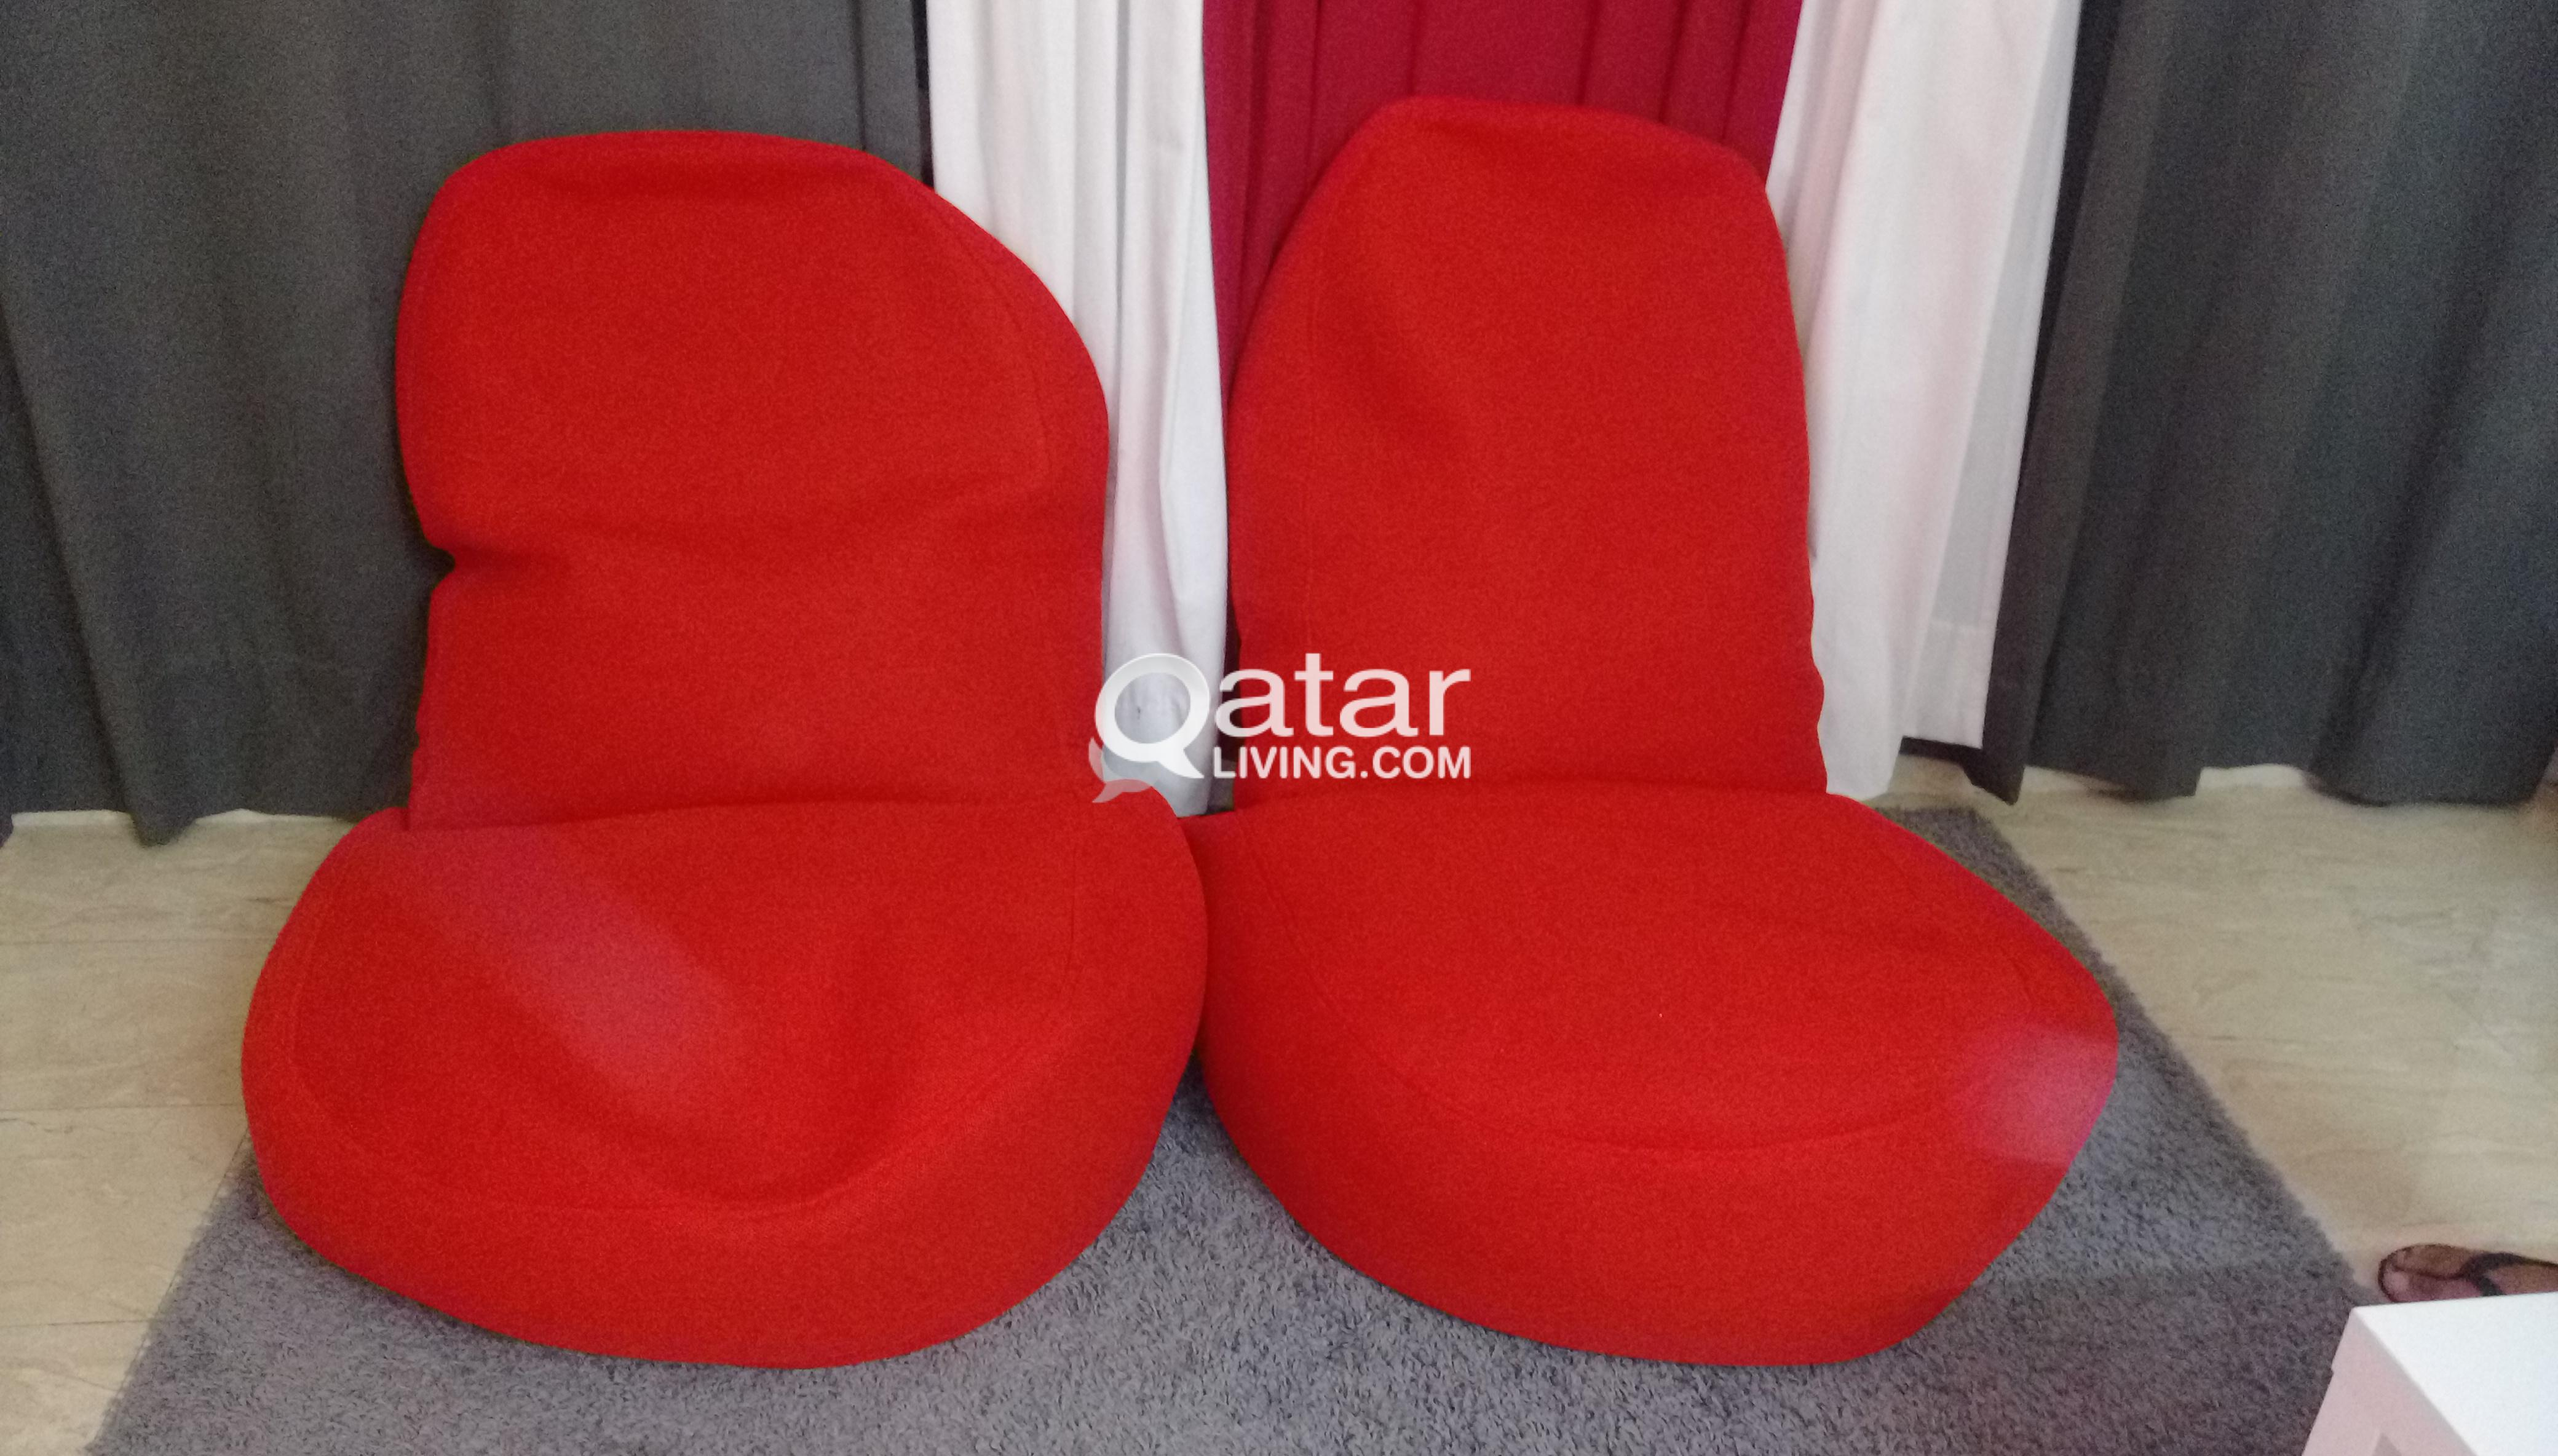 Incredible Bean Bags From Ikea Perfect Inside Out Qatar Living Machost Co Dining Chair Design Ideas Machostcouk